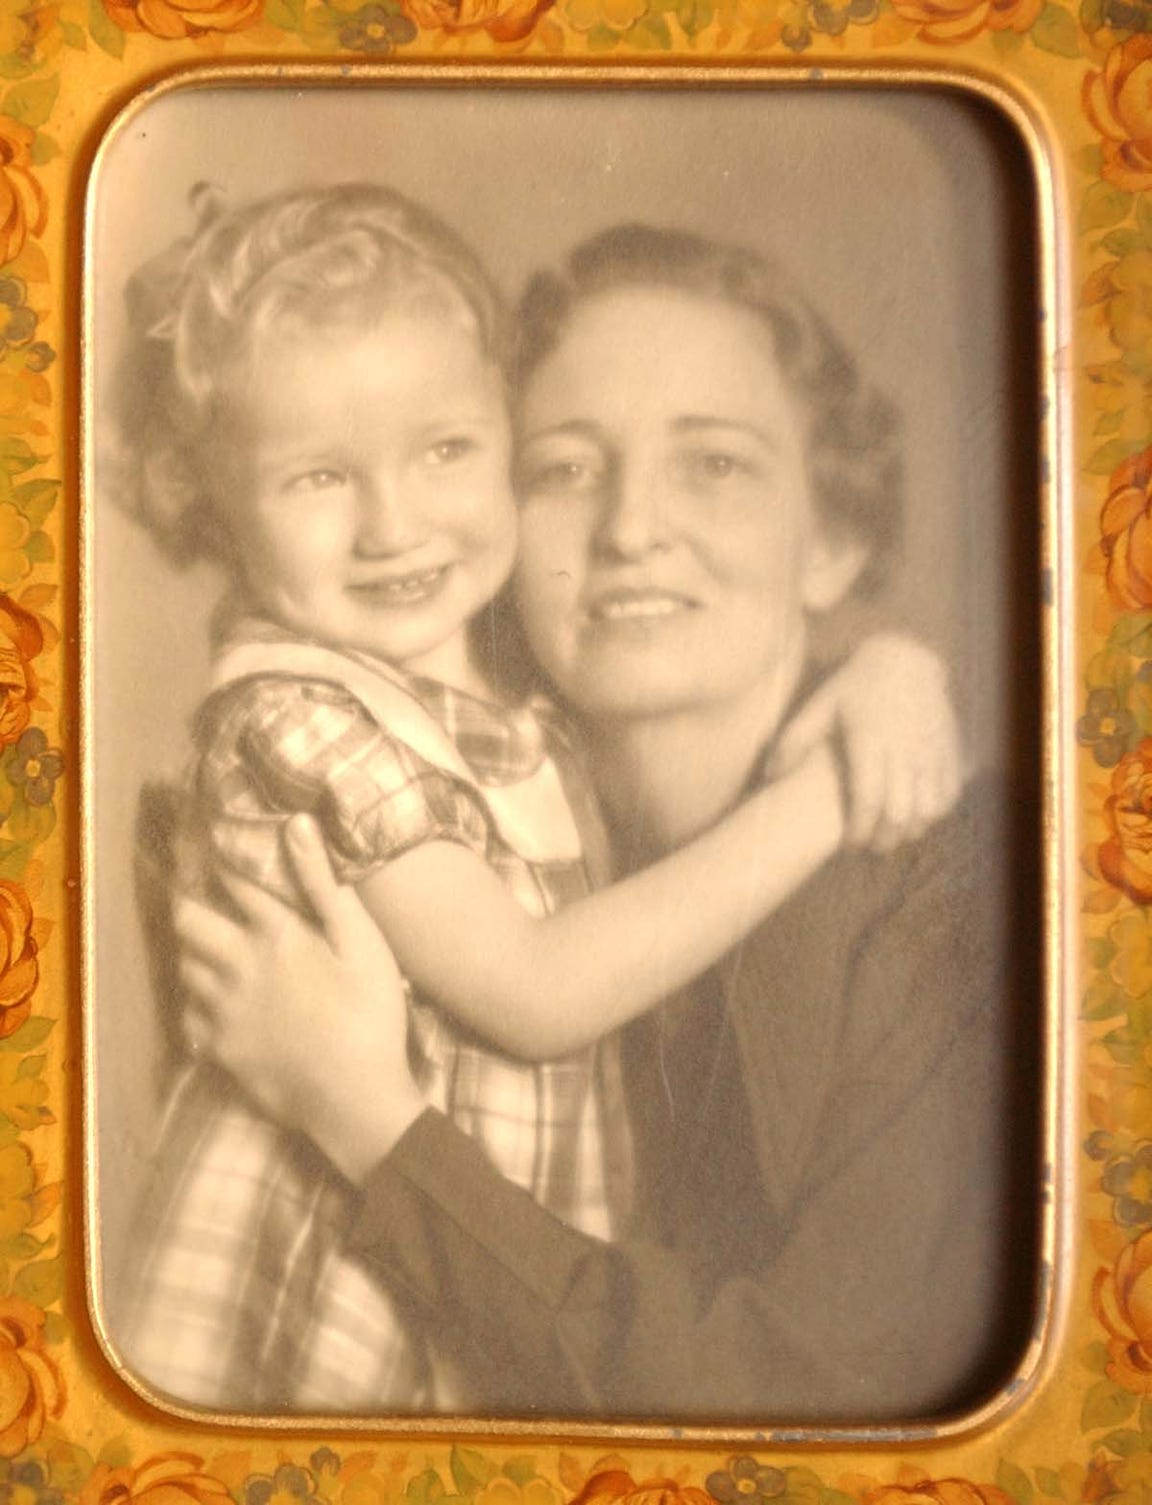 Sharon Elliott at 4-years-old with her adoptive mother Faith Morrow.